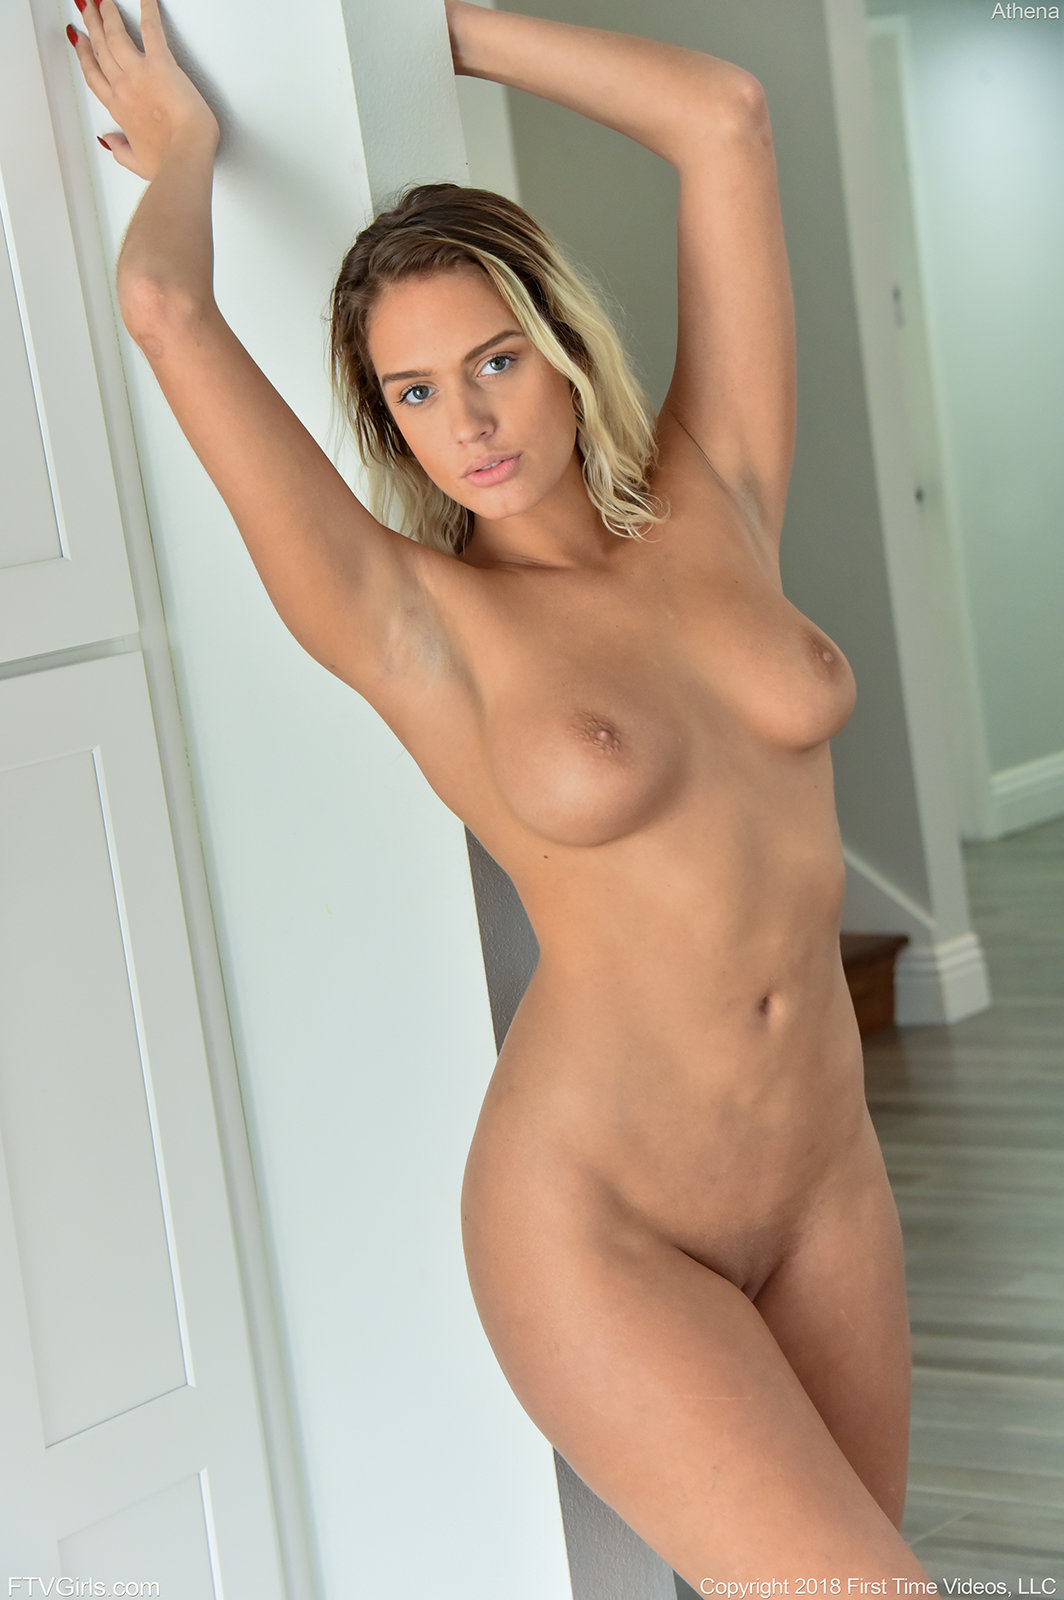 Athena in Artistic Nudes by FTV Girls 16 photos  video